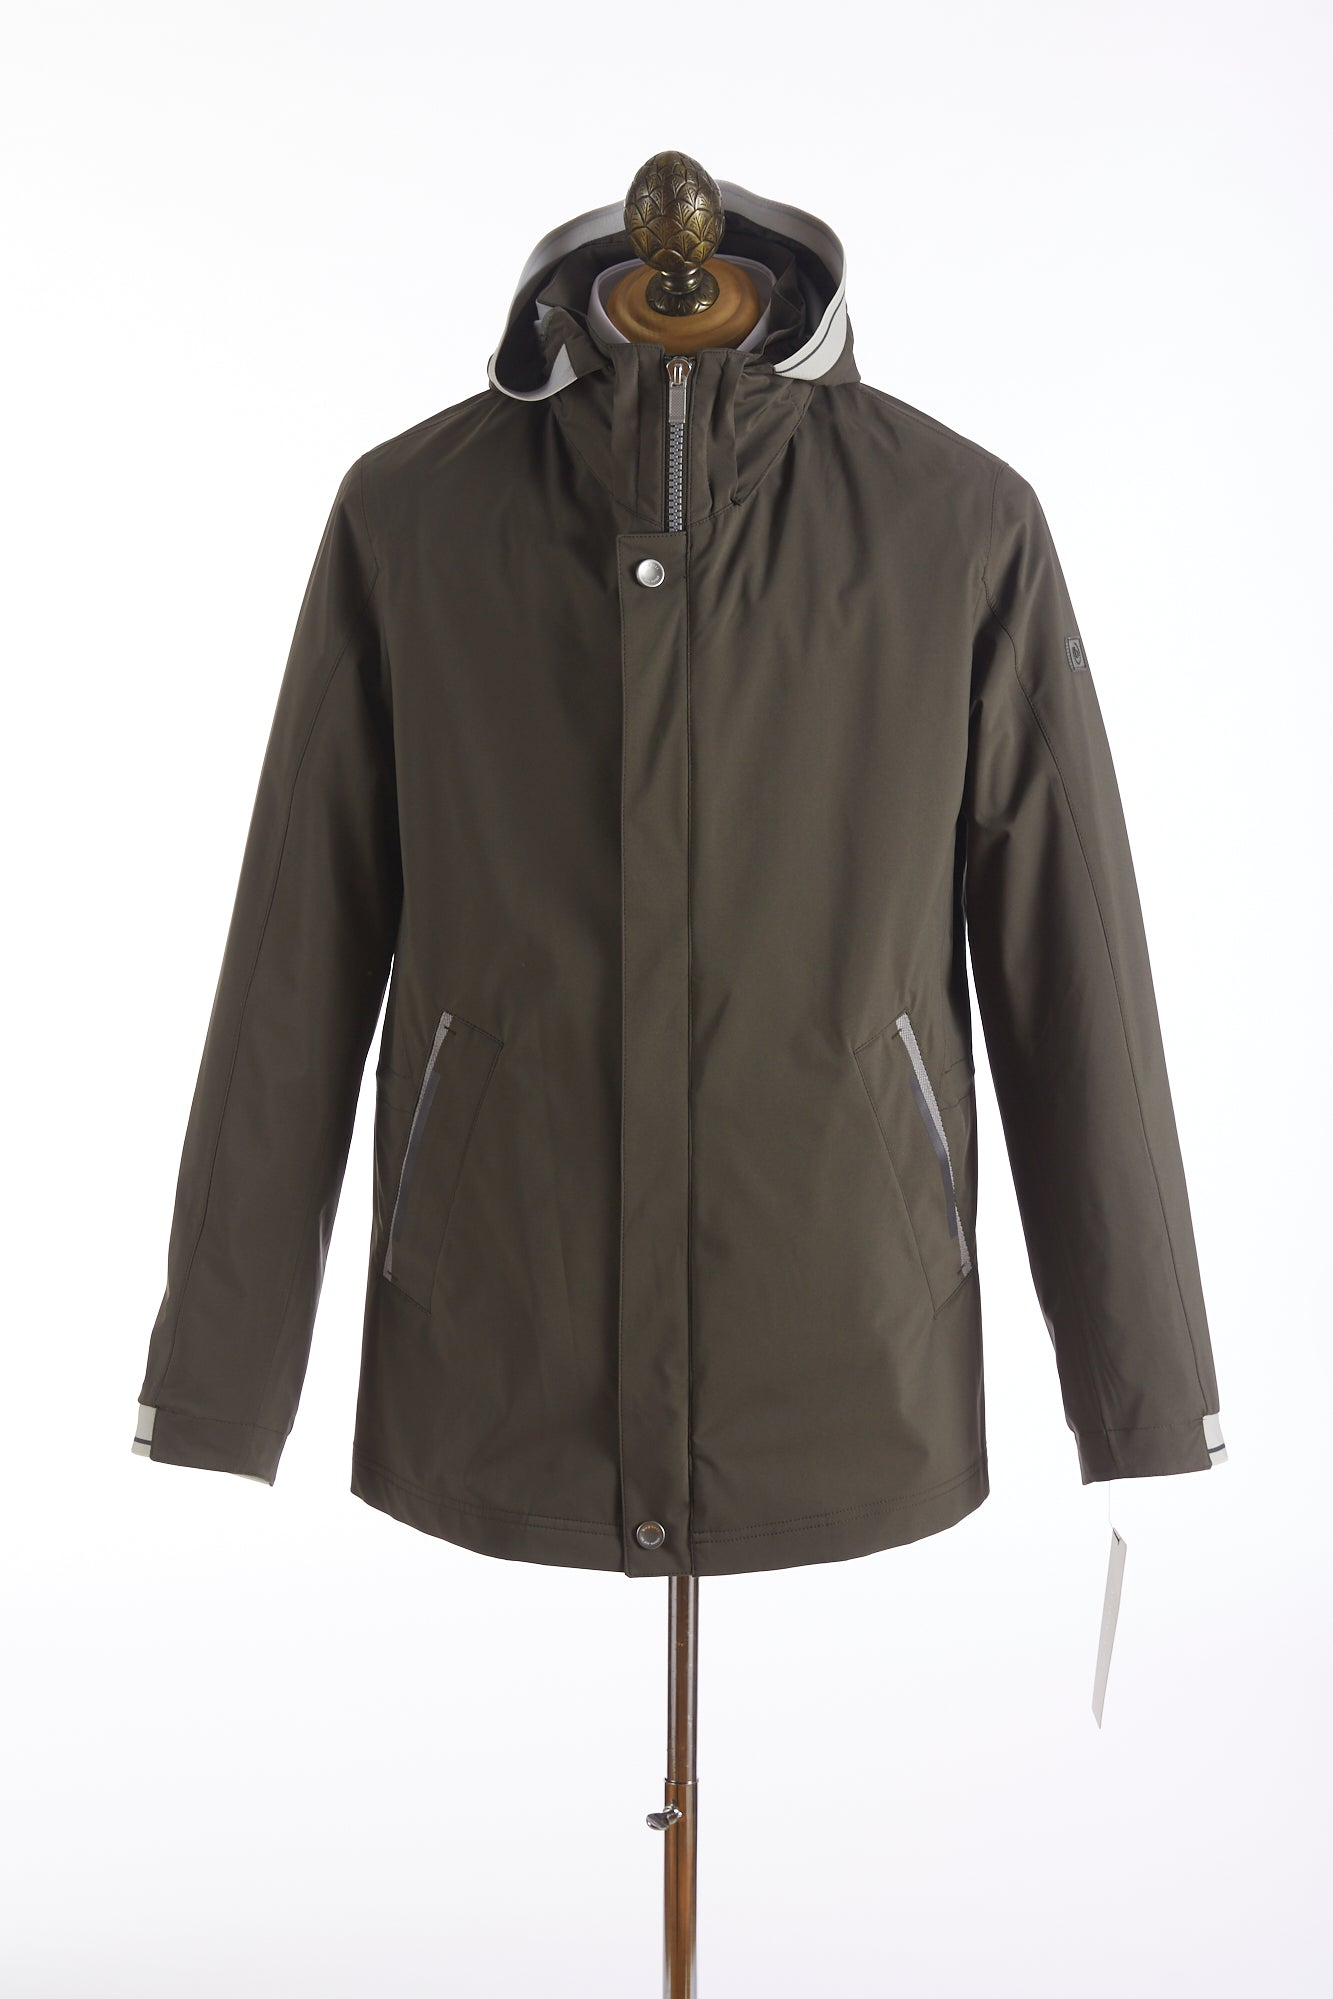 Bugatti Olive Waterproof Rainseries Jacket